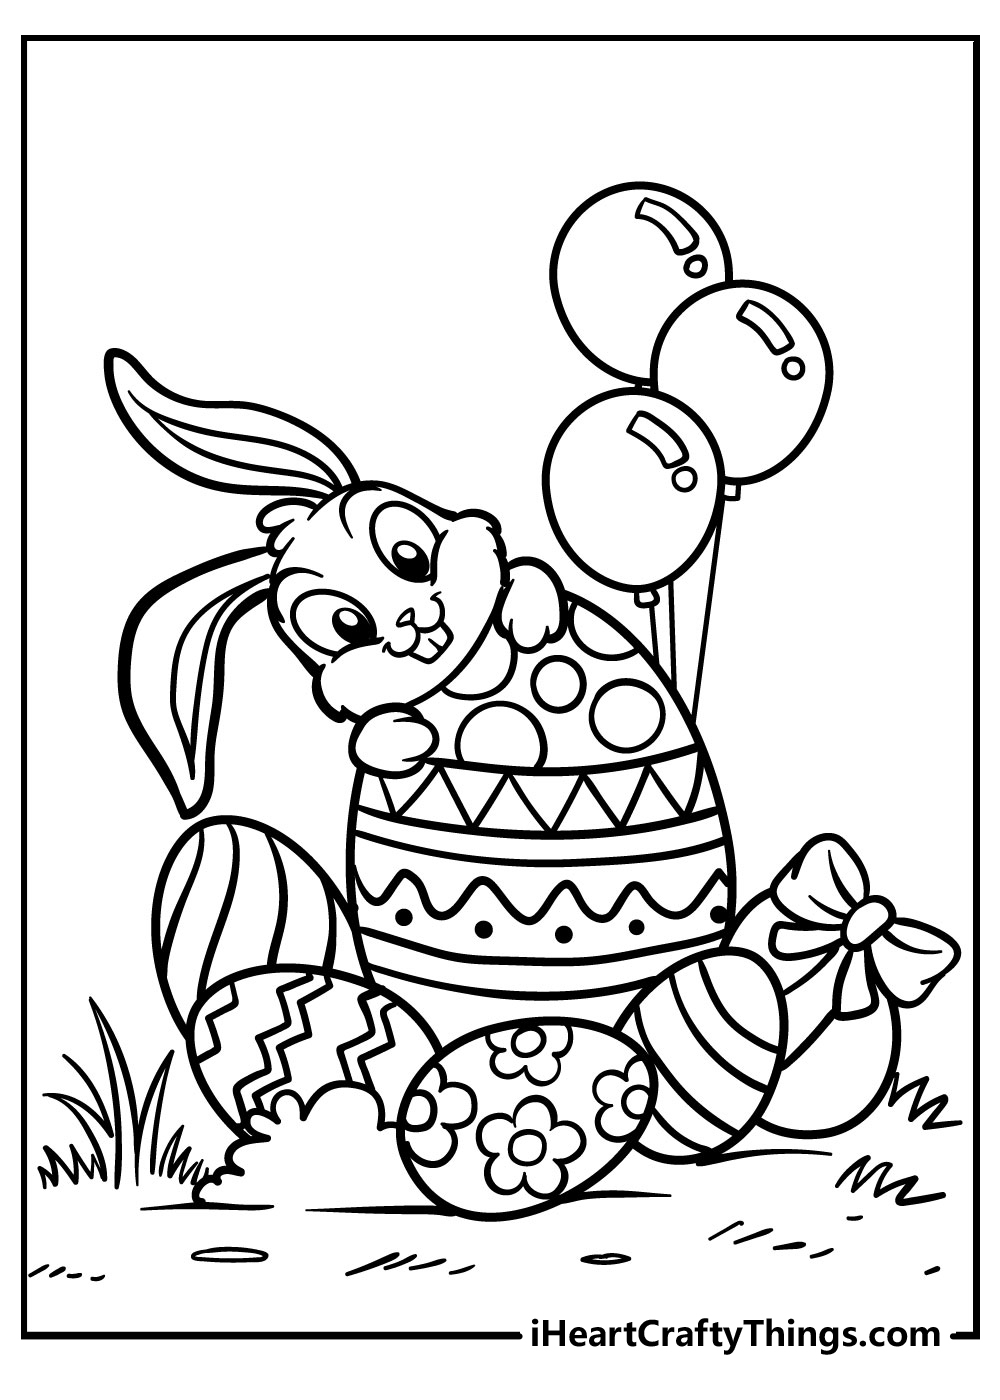 happy easter bunny coloring pages free printable